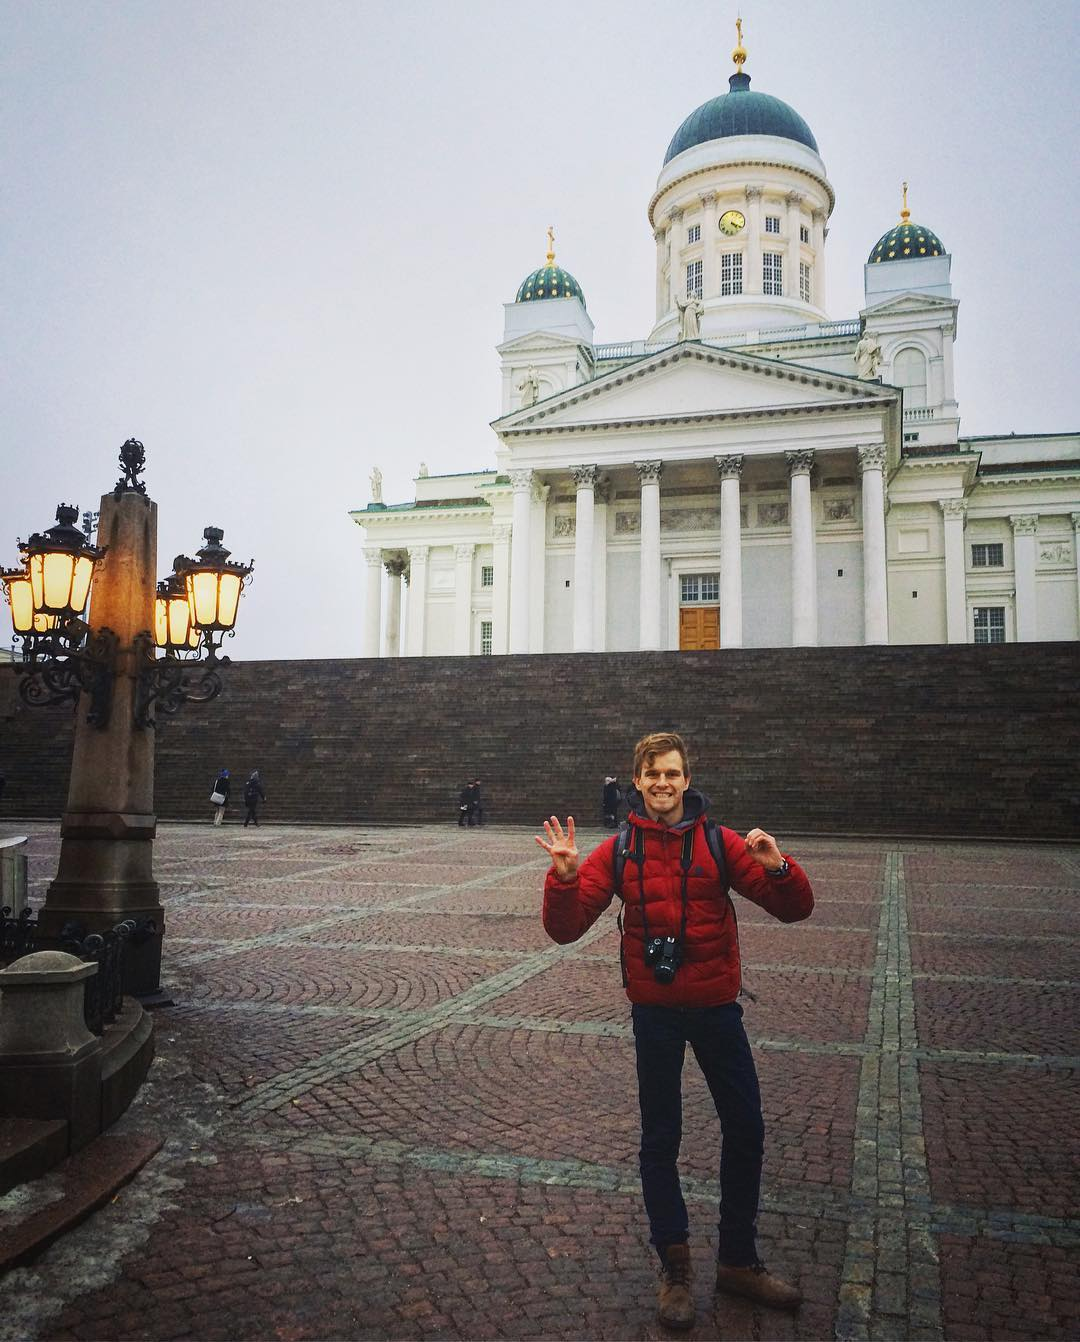 Man with red jacket in Helsinki Finland